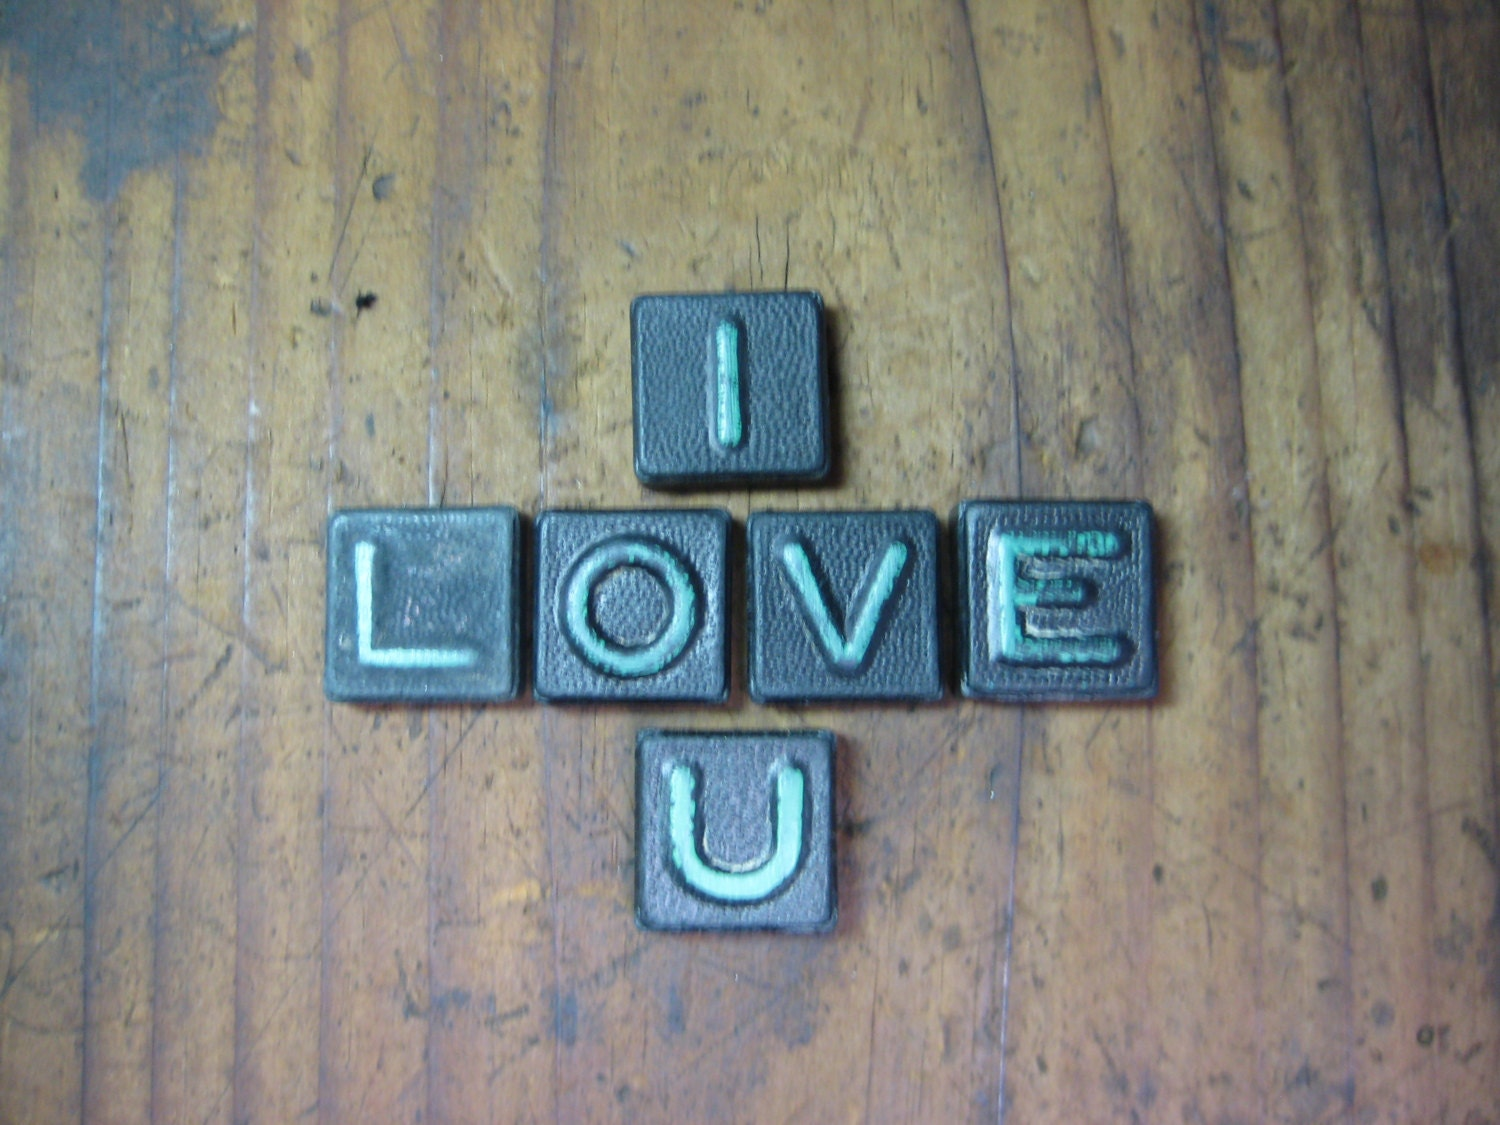 I Love U Vintage Wood Anagram Game Pieces Retro Home Decor Gifts Under 10 Gifts For Her